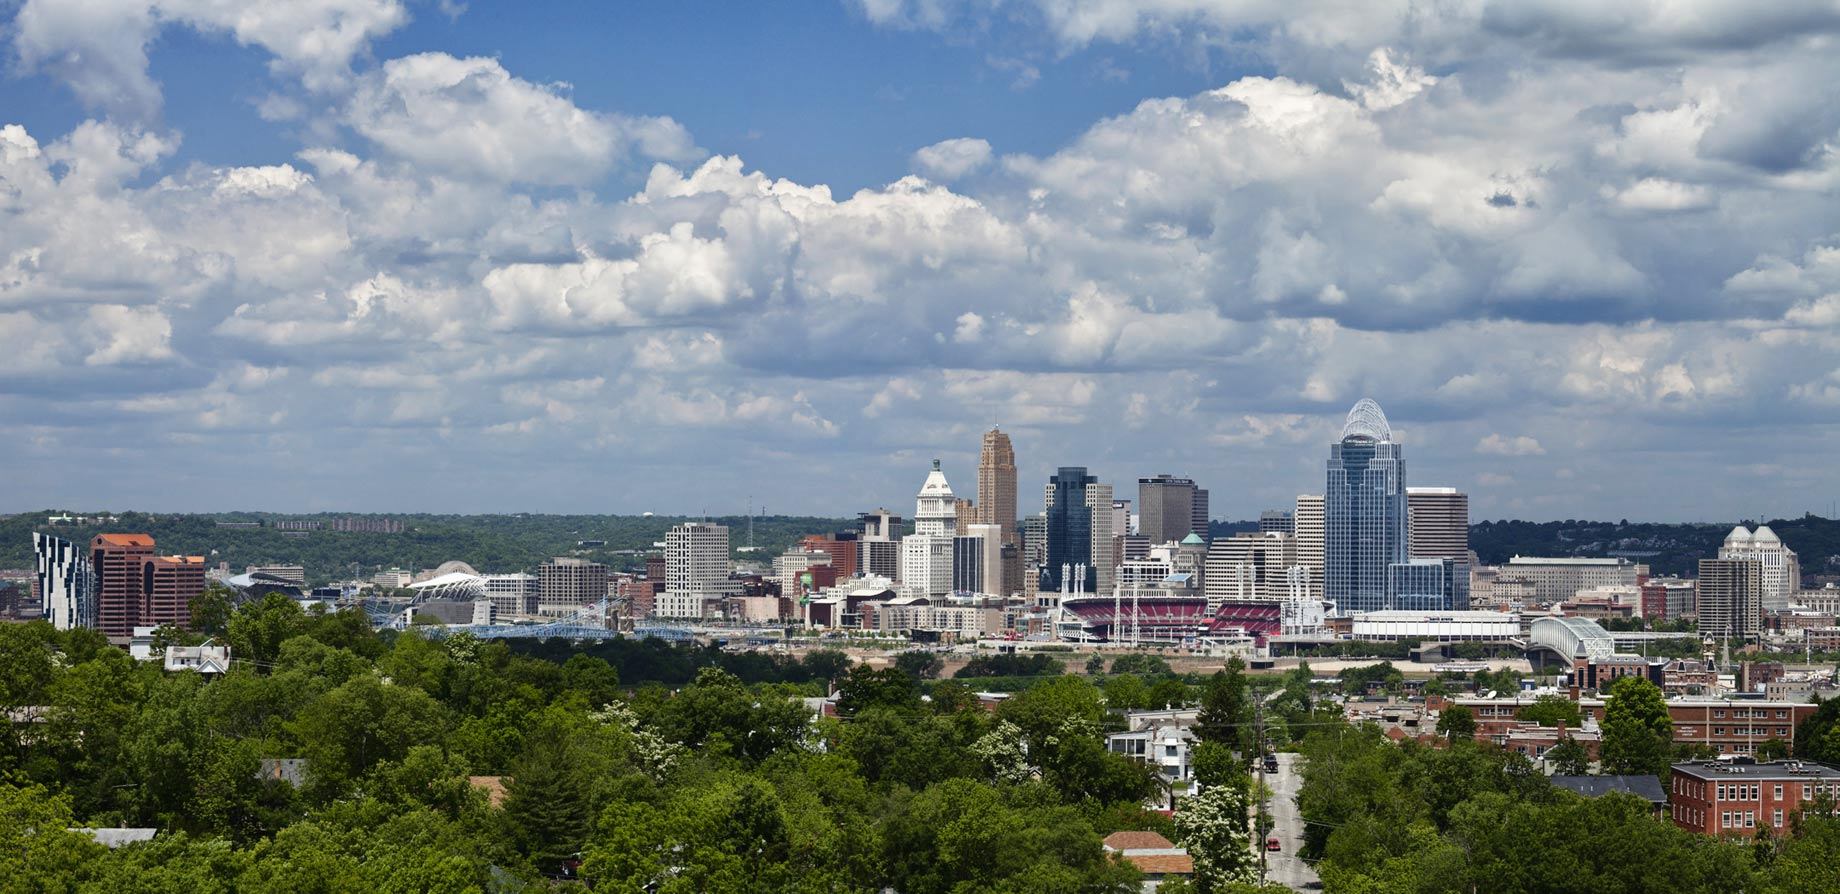 Cincinnati Skyline Landscape Photo